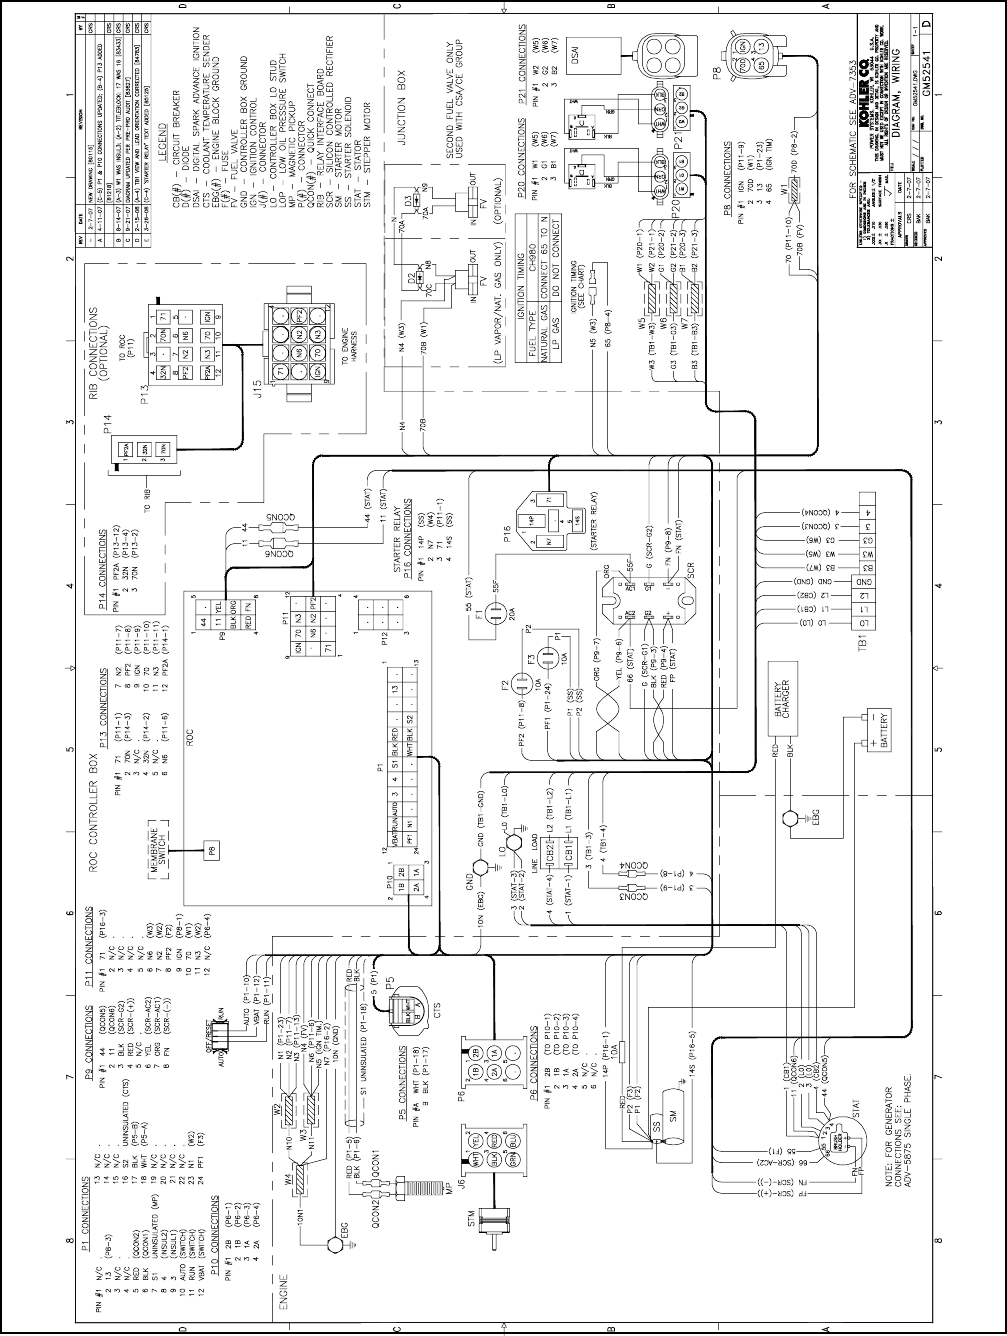 generac standby generator wiring diagram with Kohler Generator Wiring Diagram on Generac 5000 Watt Wiring Diagrams additionally Kohler Engine Wiring Diagrams as well Page2 likewise TM 9 6115 670 14P 41 furthermore Generac Generators Wiring Diagram Carburetor.